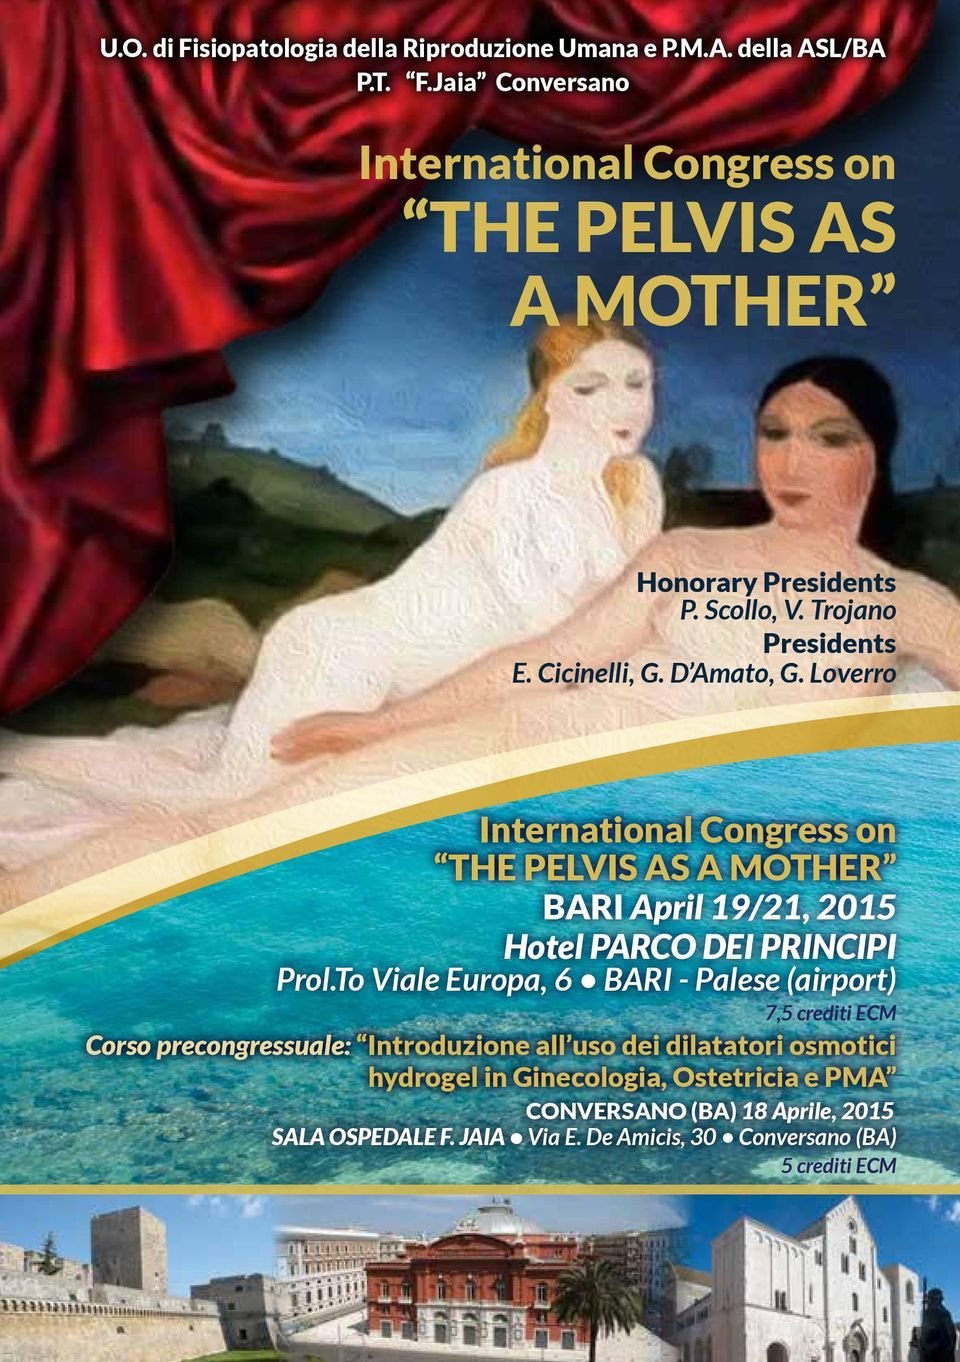 Loverro International Congress on THE PELVIS AS A MOTHER Bari April 19/21, 2015 Hotel parco dei principi Prol.